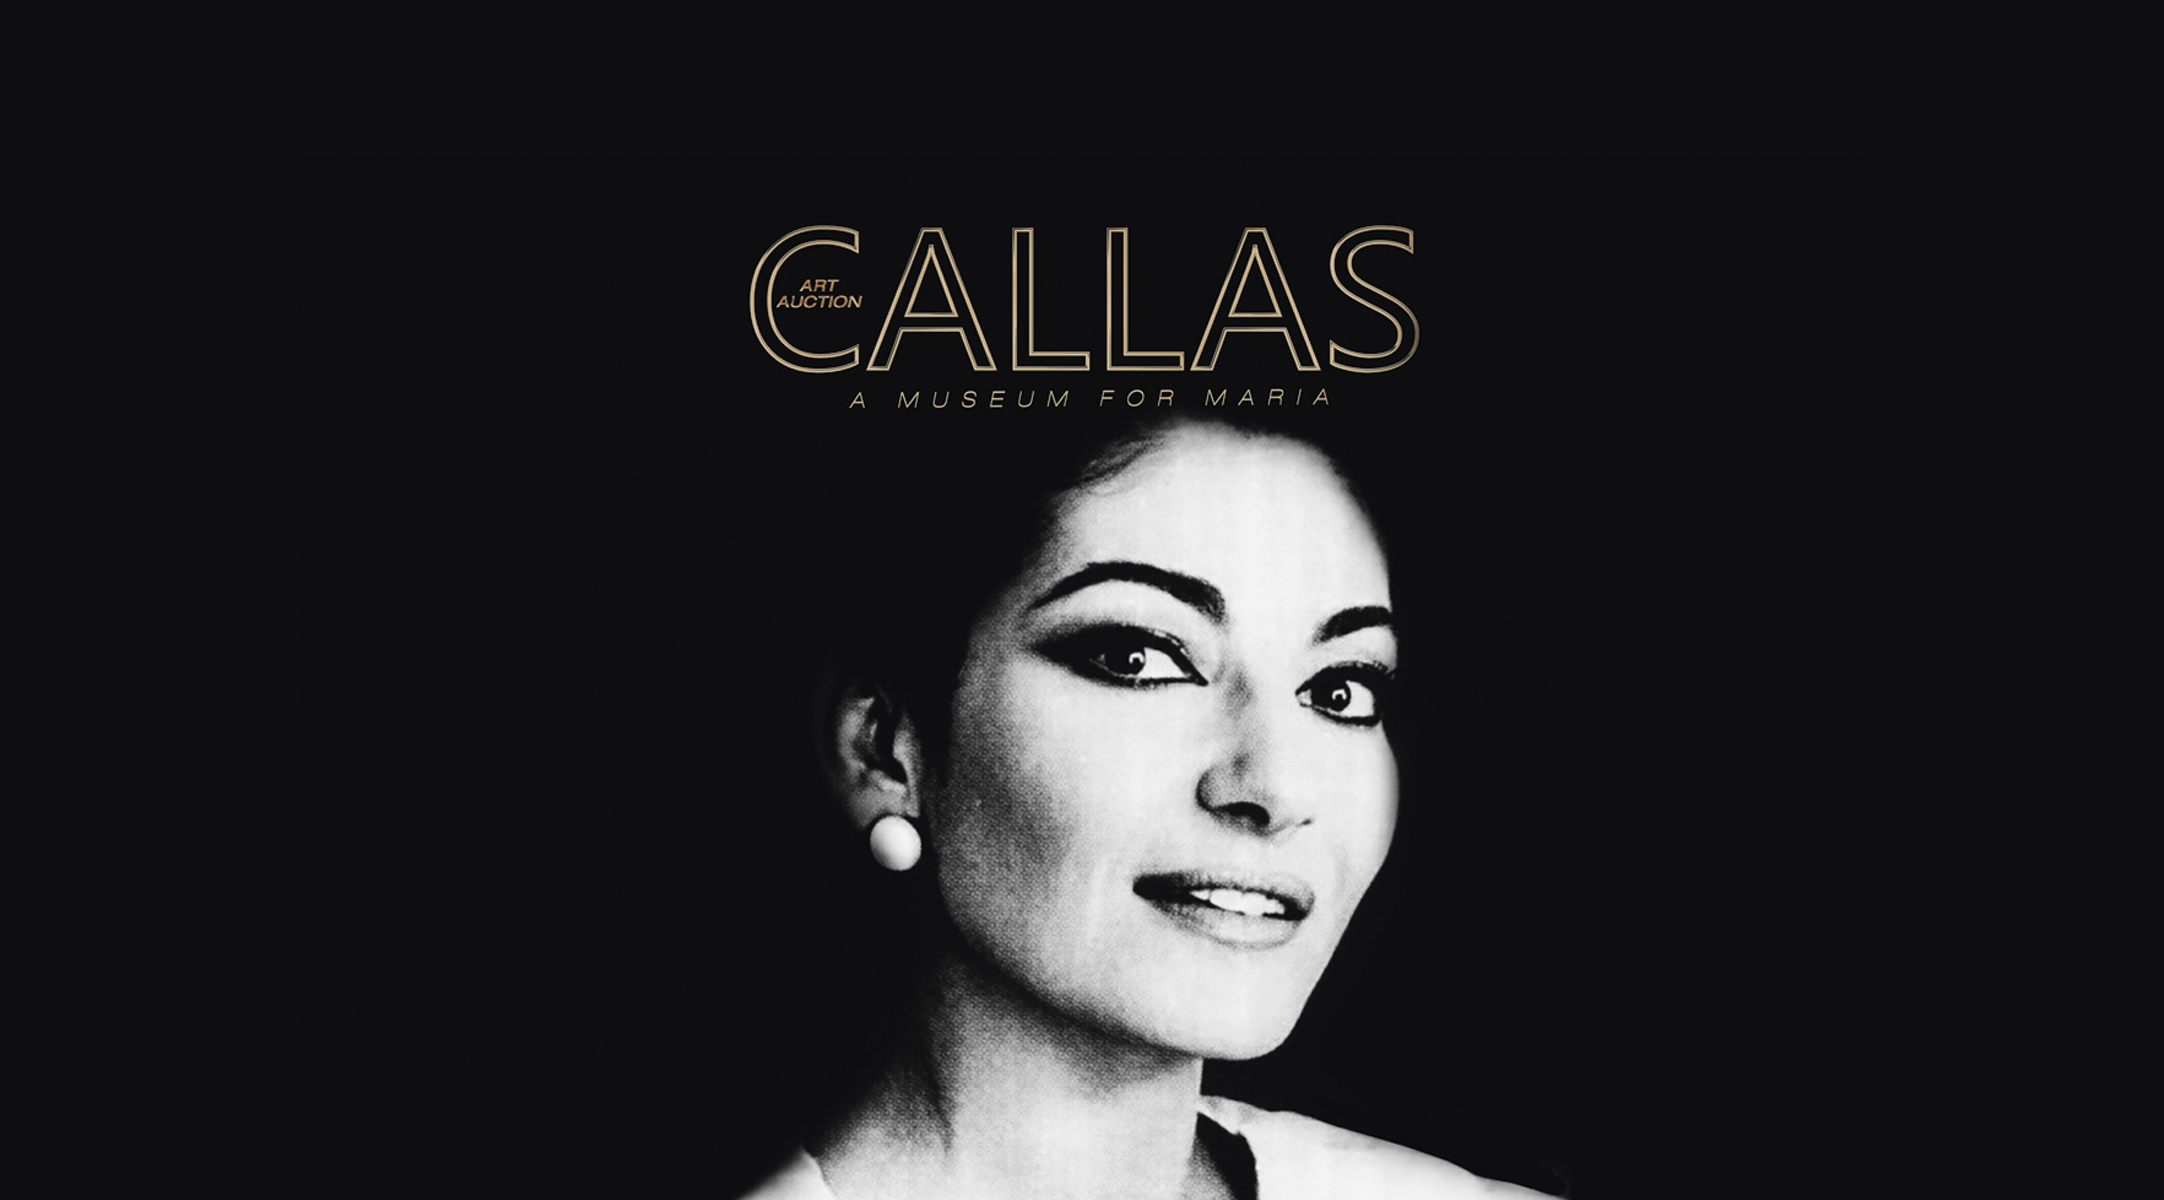 CALLAS - A Museum for Maria